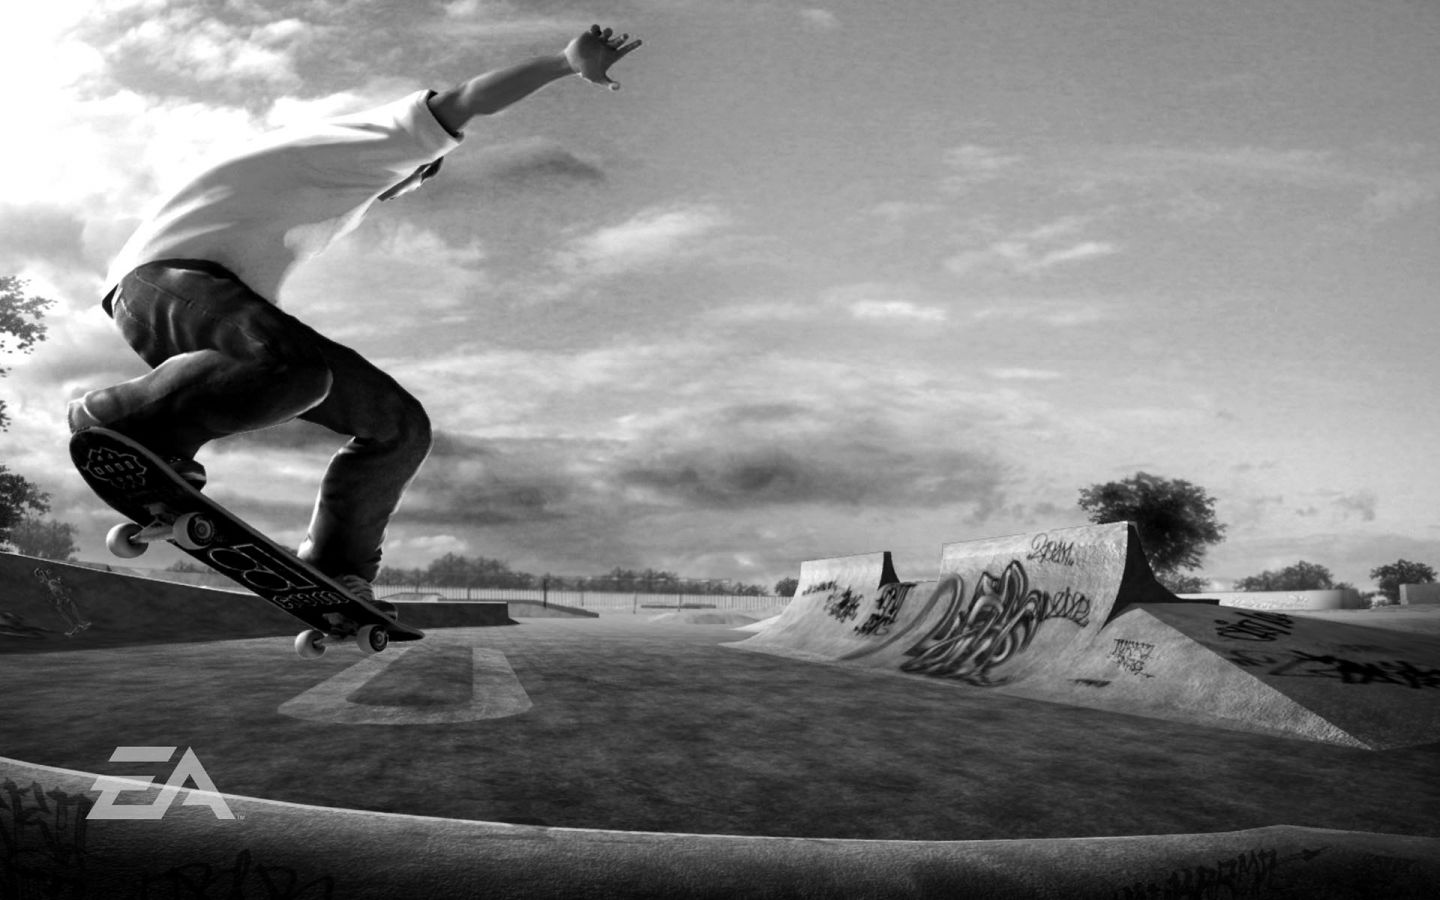 wallpapers hd for mac Skateboarding Wallpaper HD 1440x900